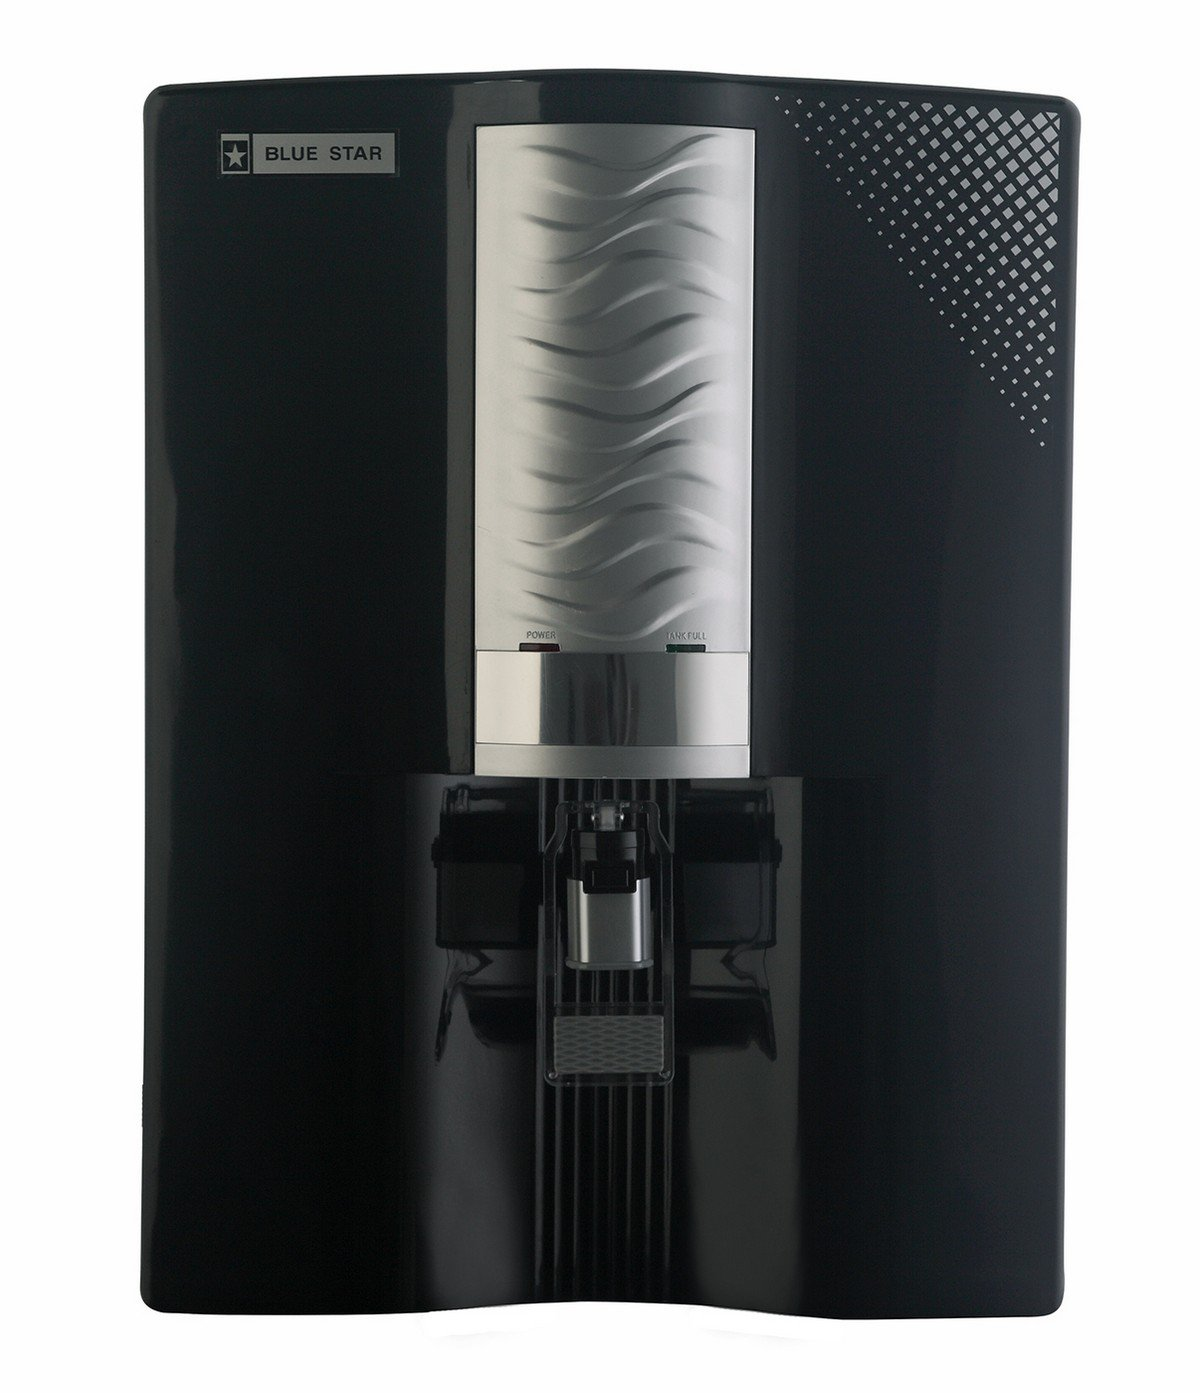 Blue Star Majesto Water Purifier Review